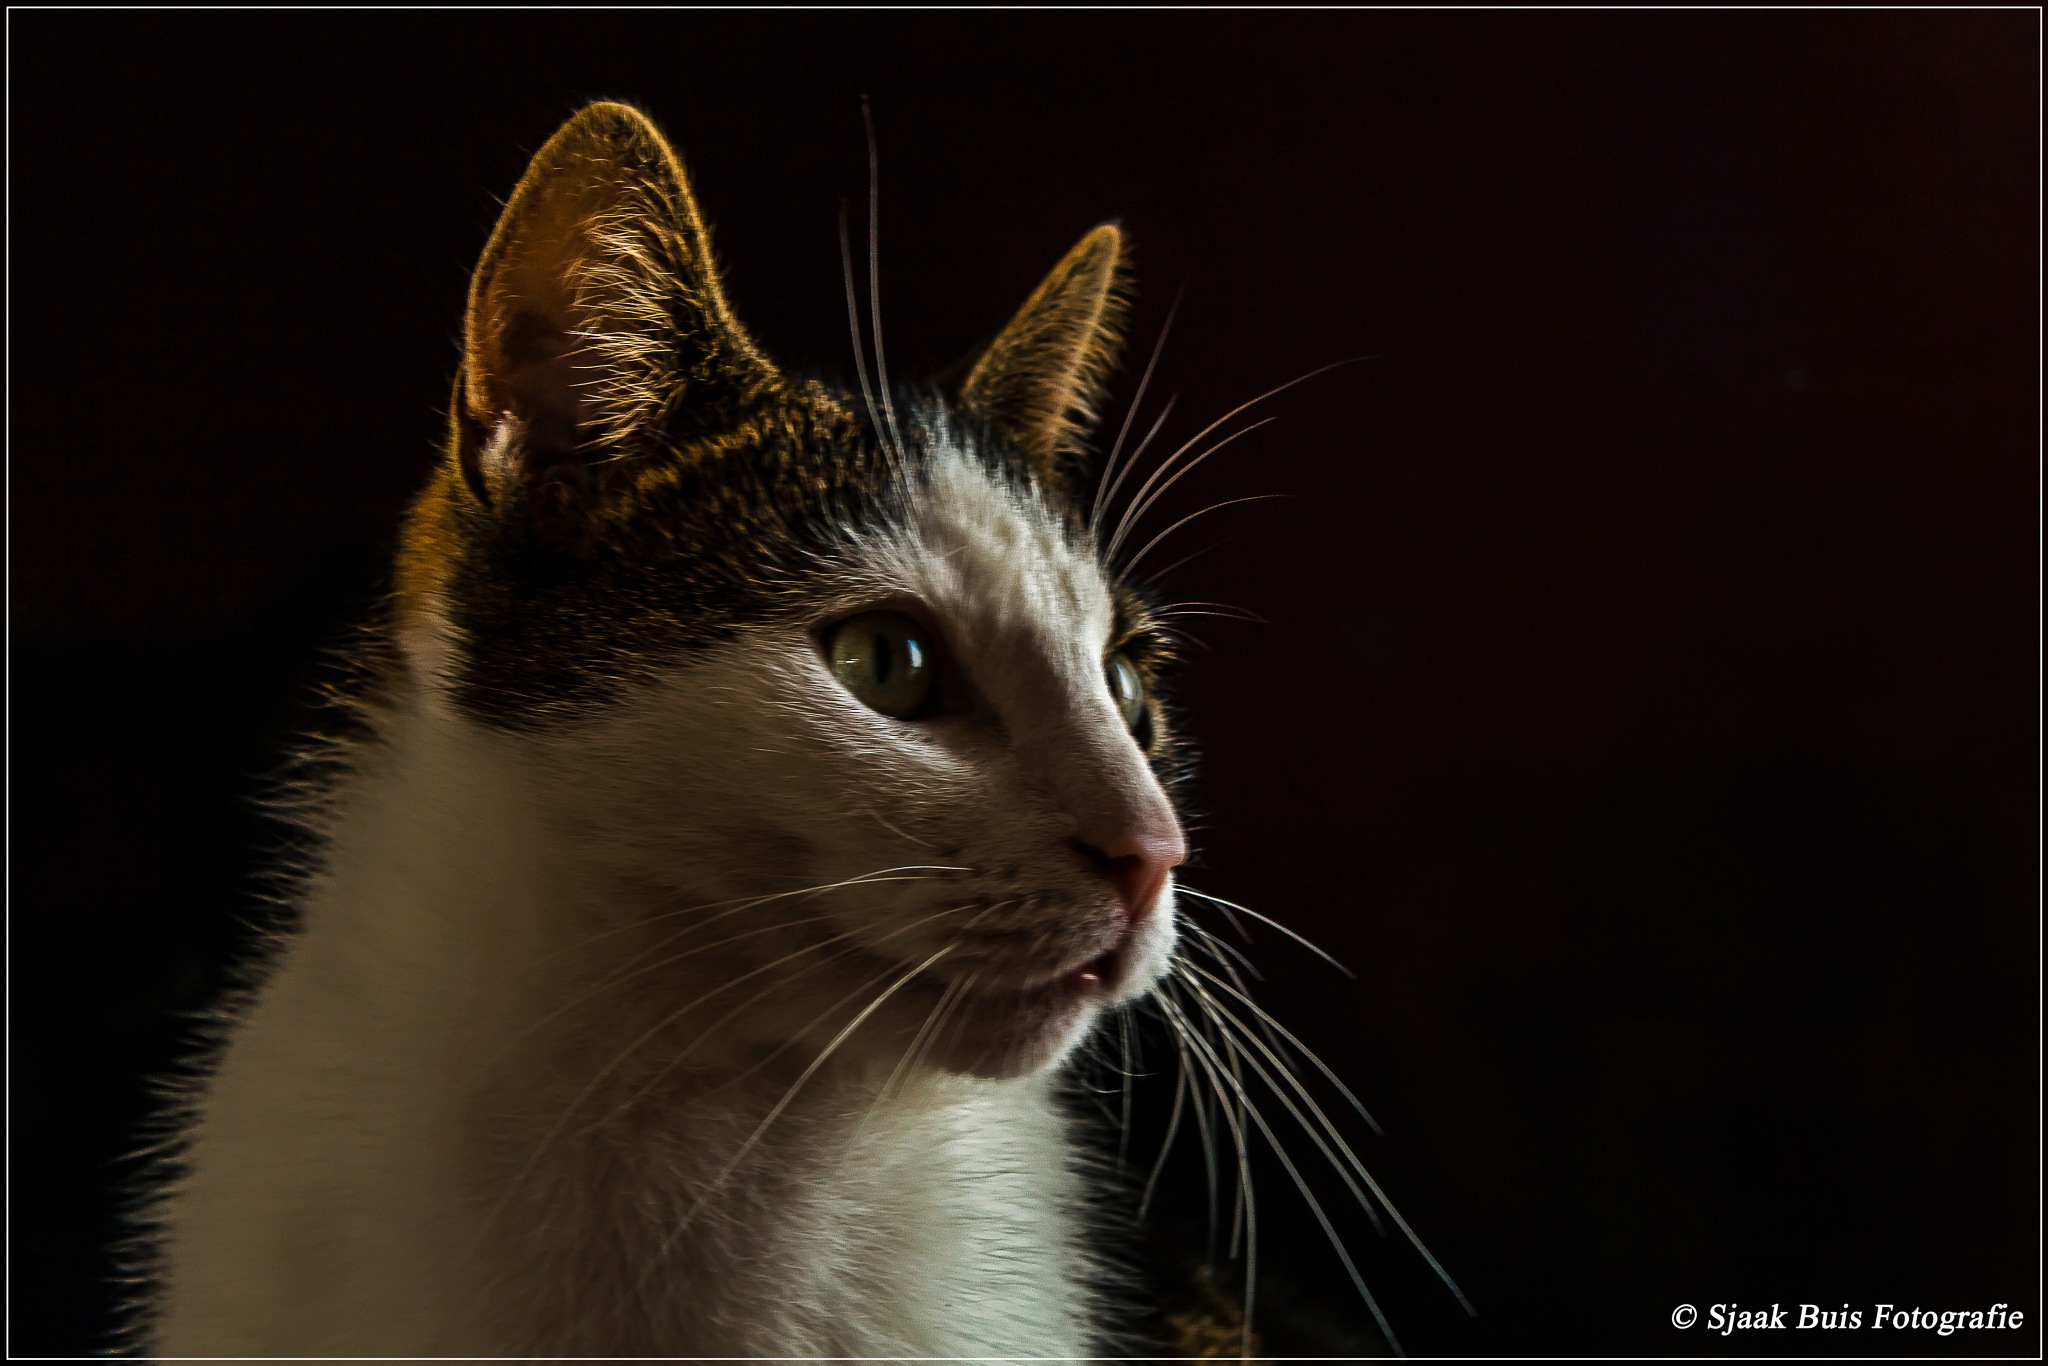 The Cat by Sjaak Buis